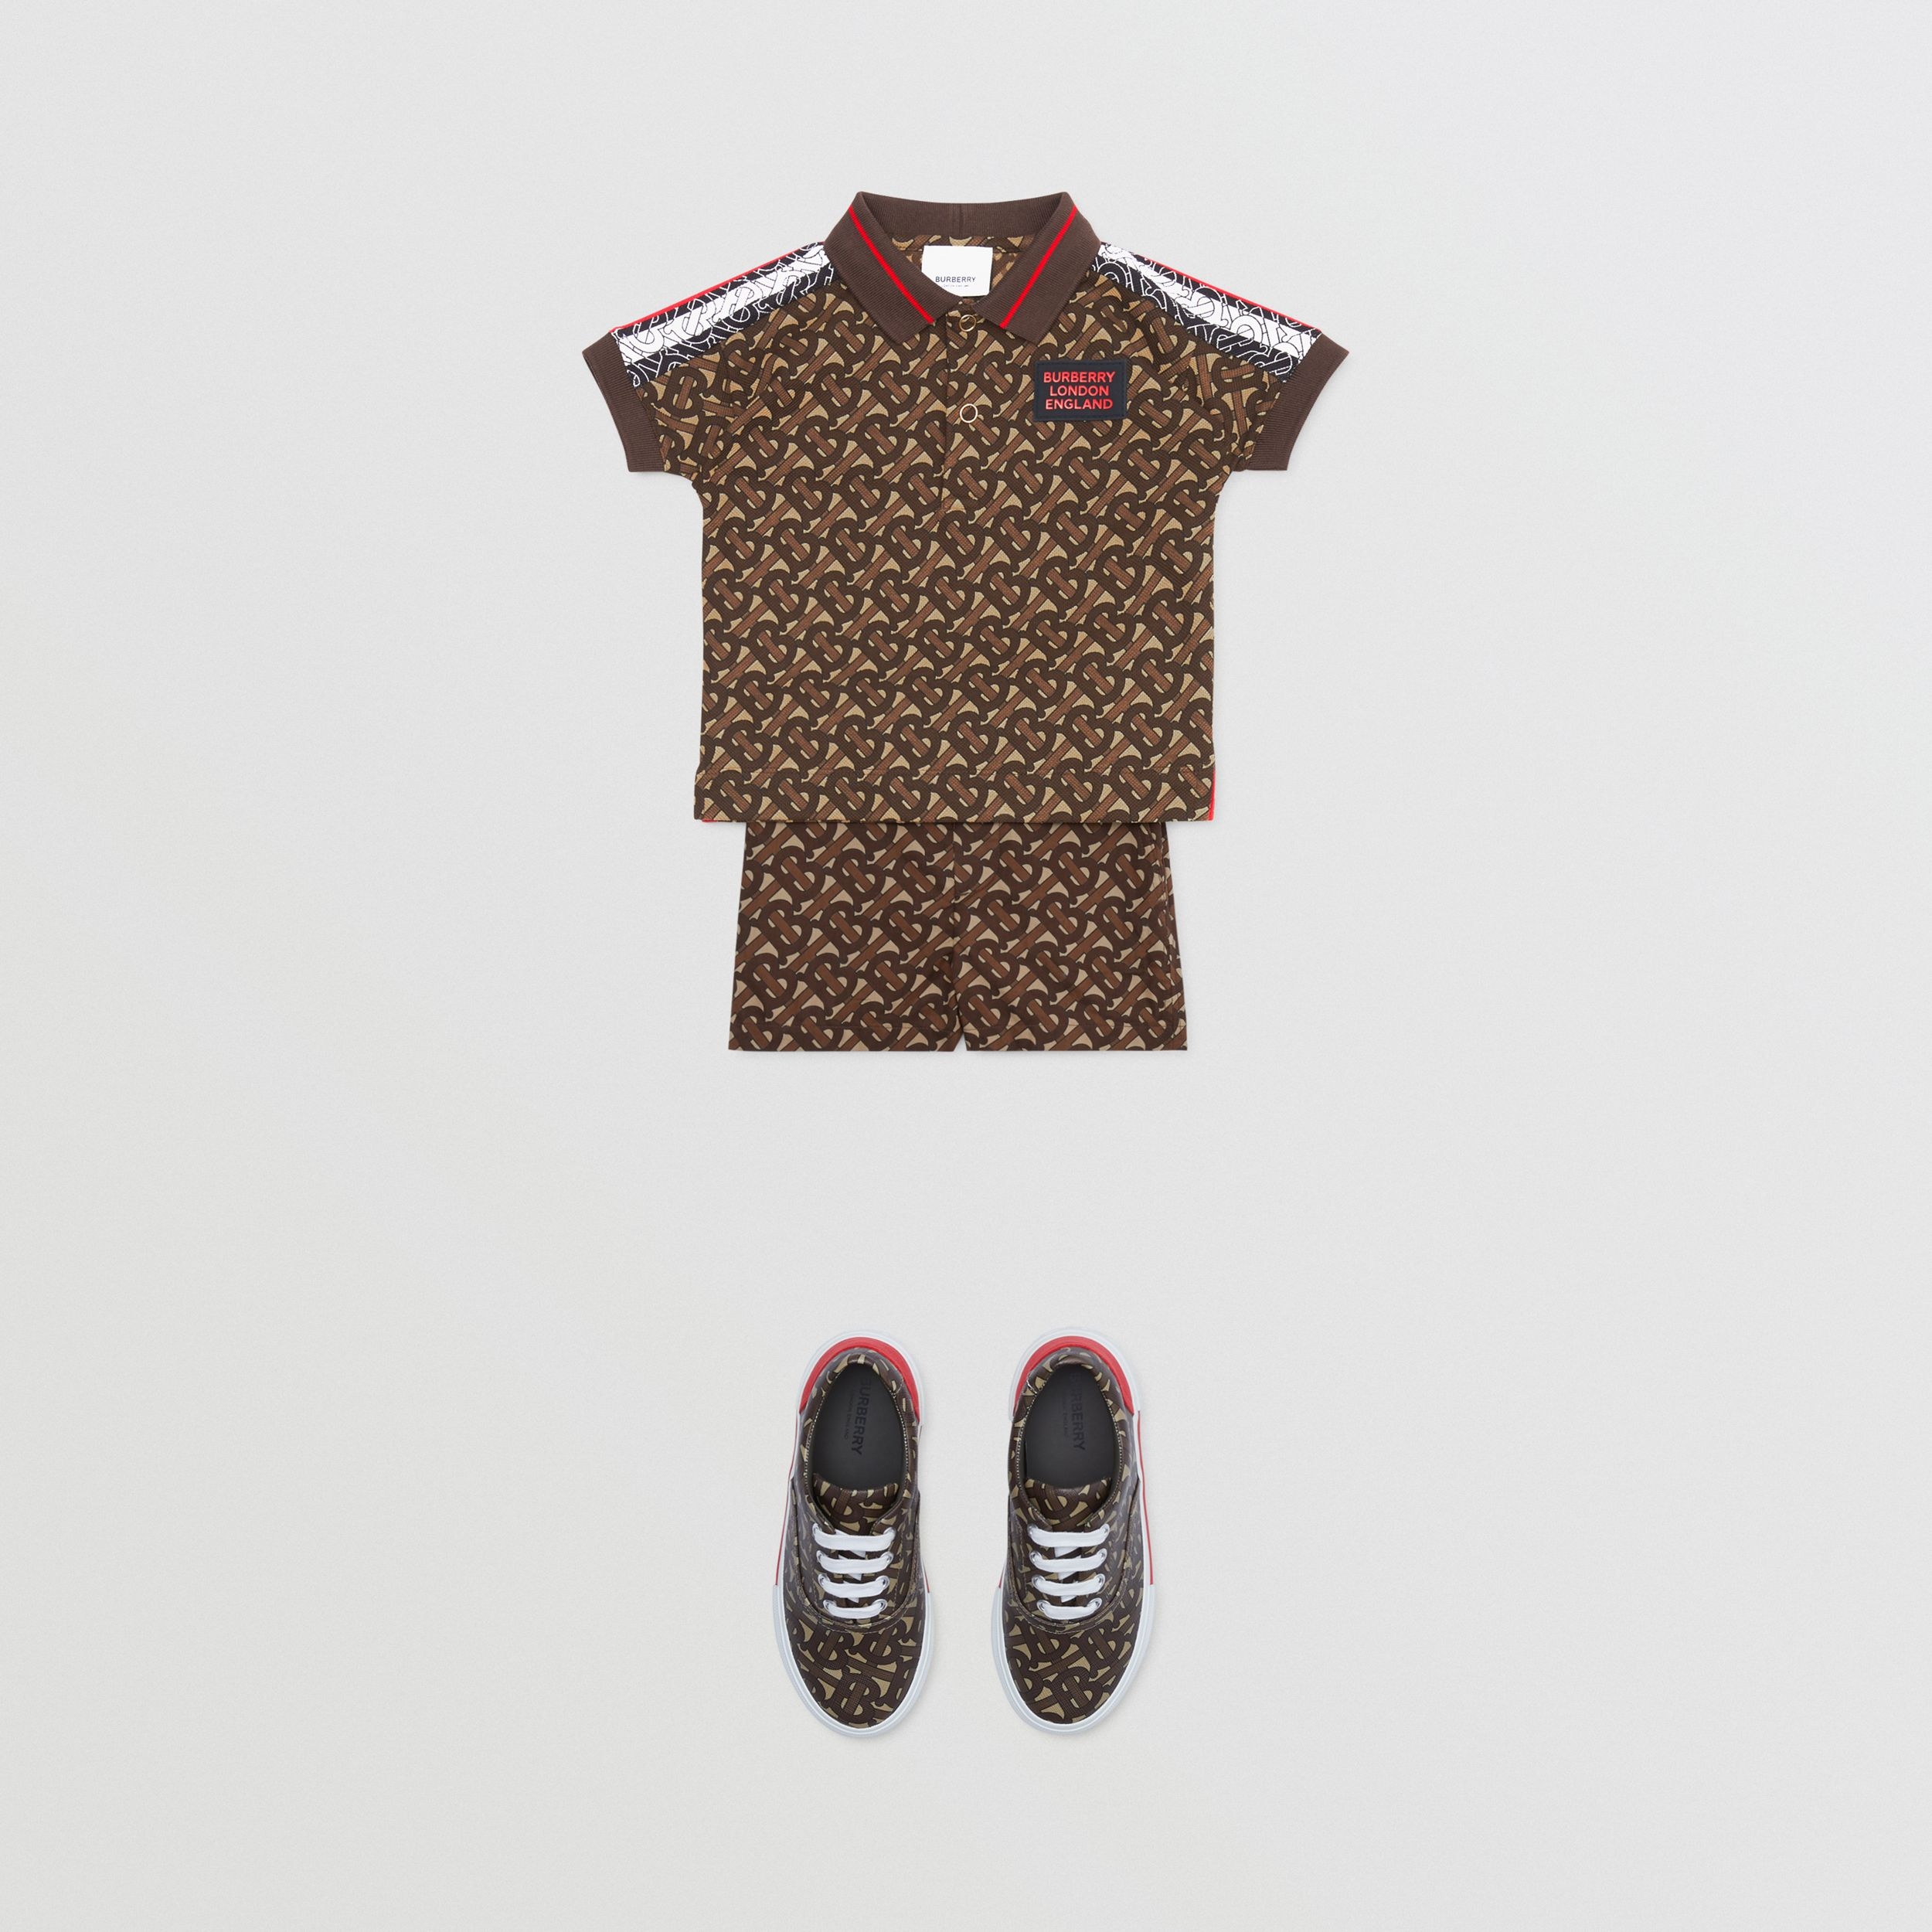 Monogram Stripe Print Cotton Piqué Polo Shirt in Bridle Brown - Children | Burberry - 3